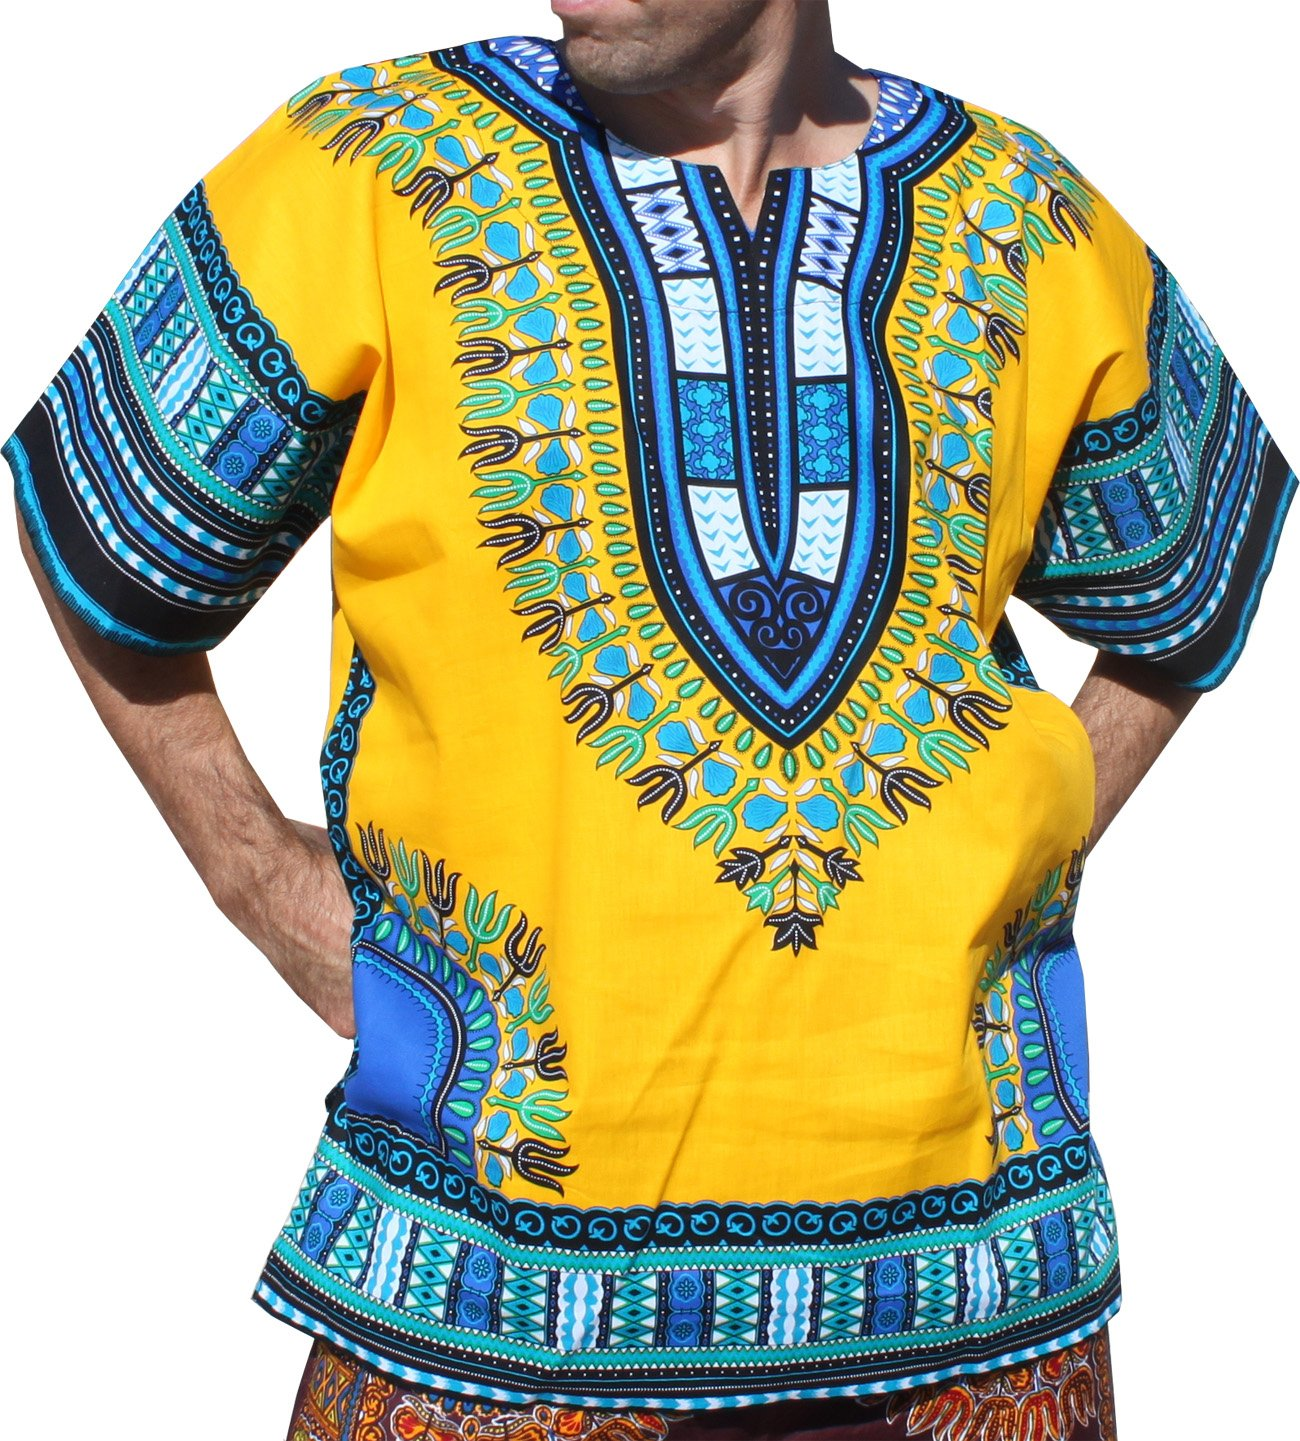 RaanPahMuang Brand Unisex Bright Colour Cotton Africa Dashiki Shirt Plain Front, X-Large, Amber Yellow by Raan Pah Muang (Image #1)